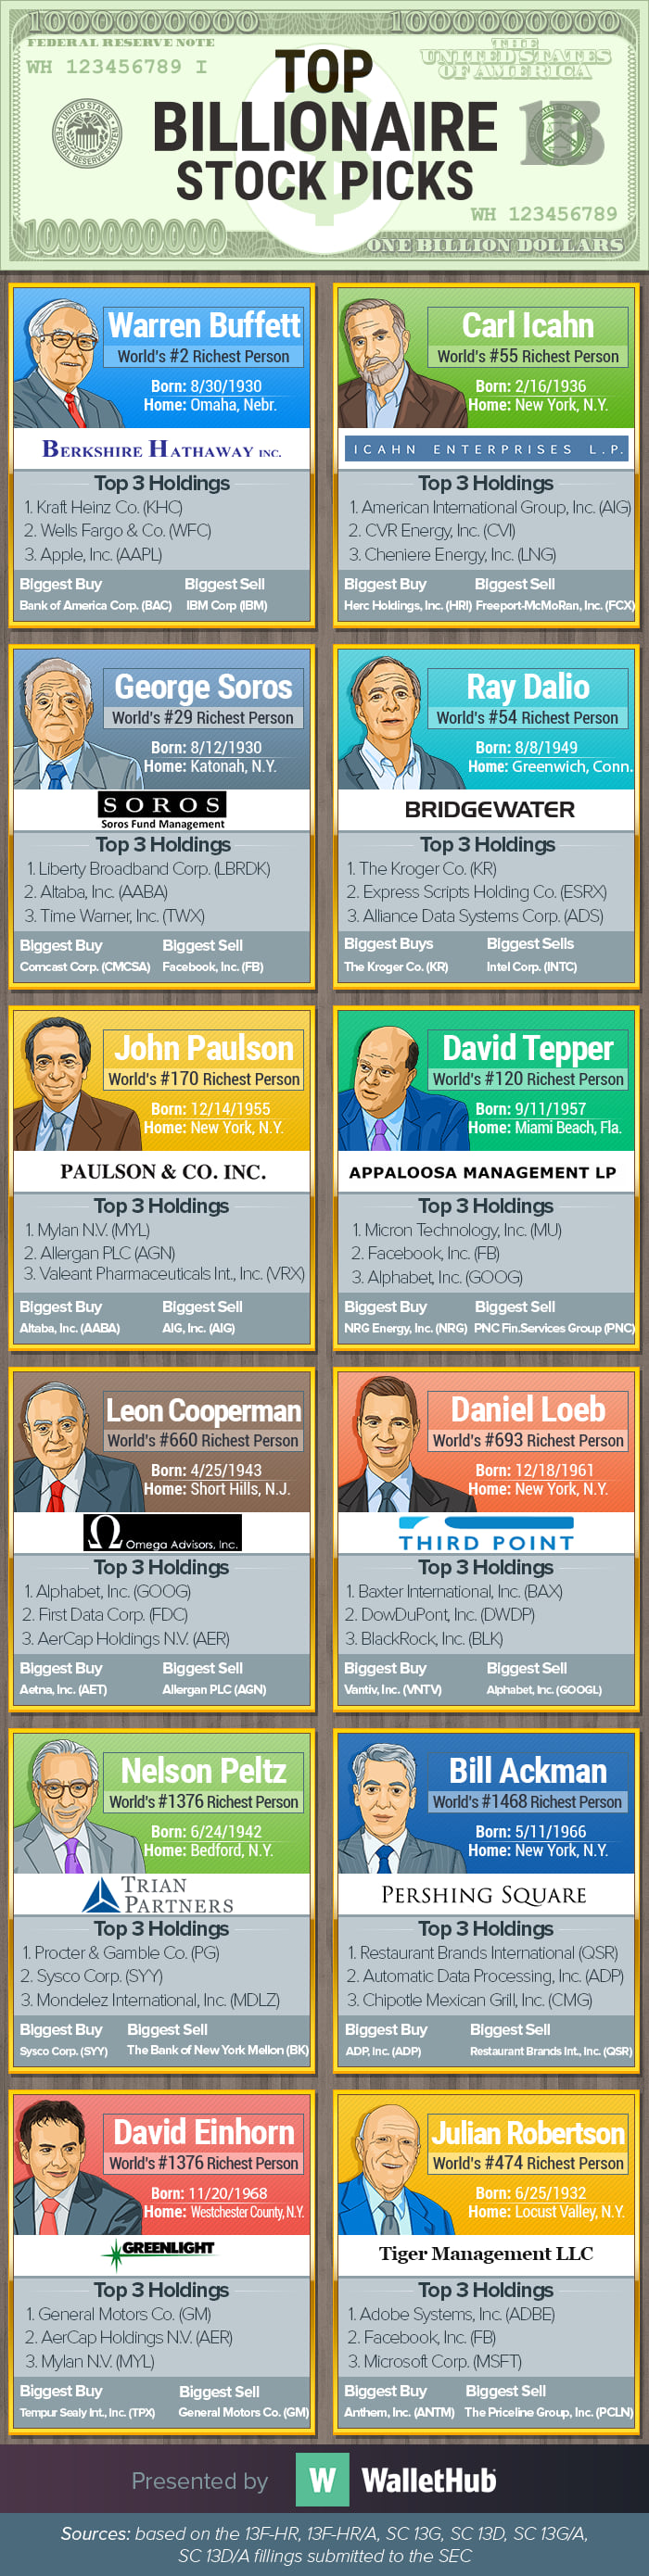 stocks owned by George soros, David Tepper